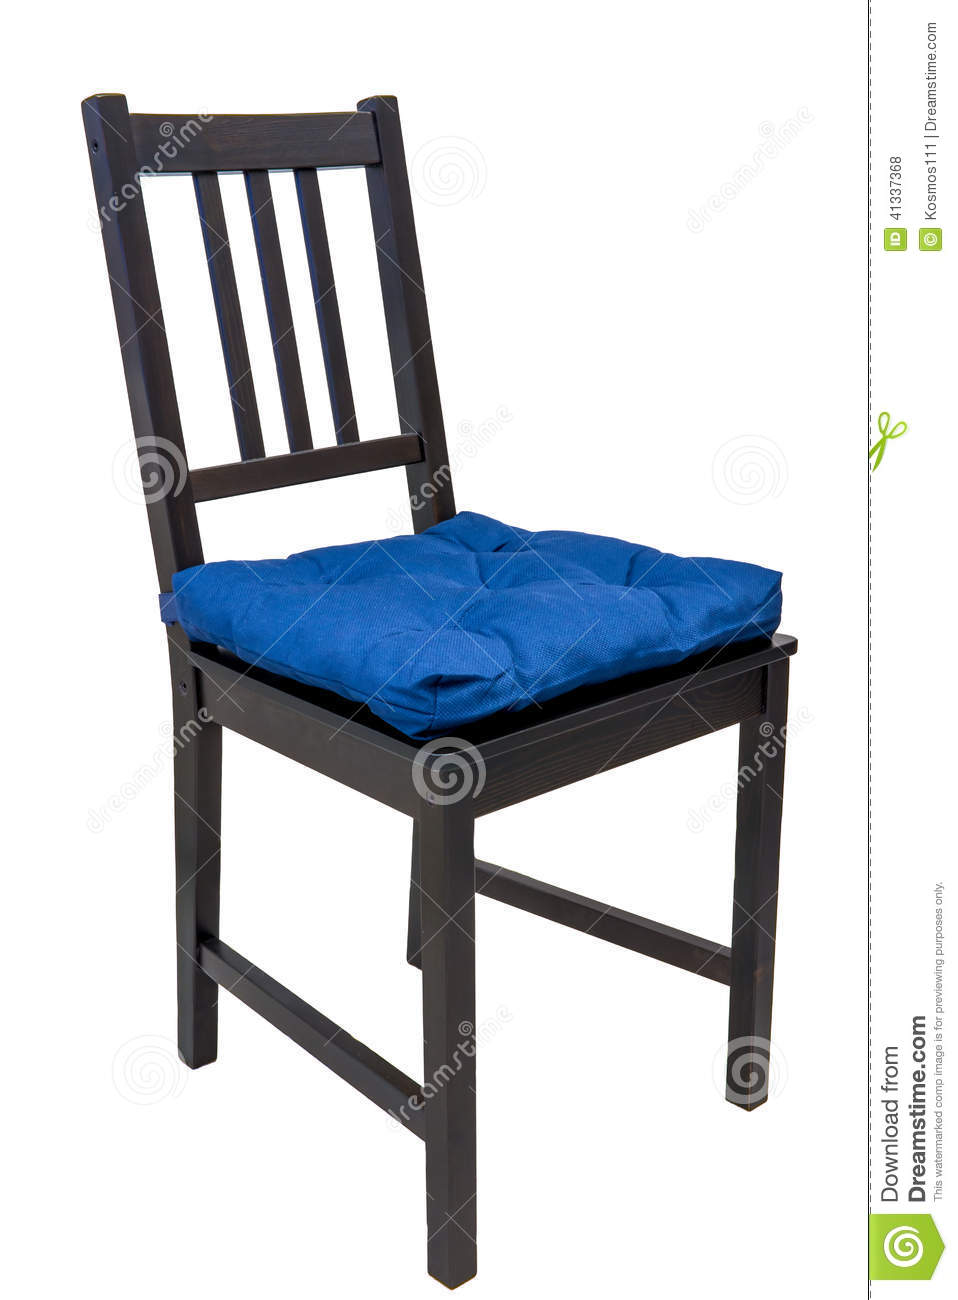 Comfy chair with a pillow stock photo image of office for White comfy chair